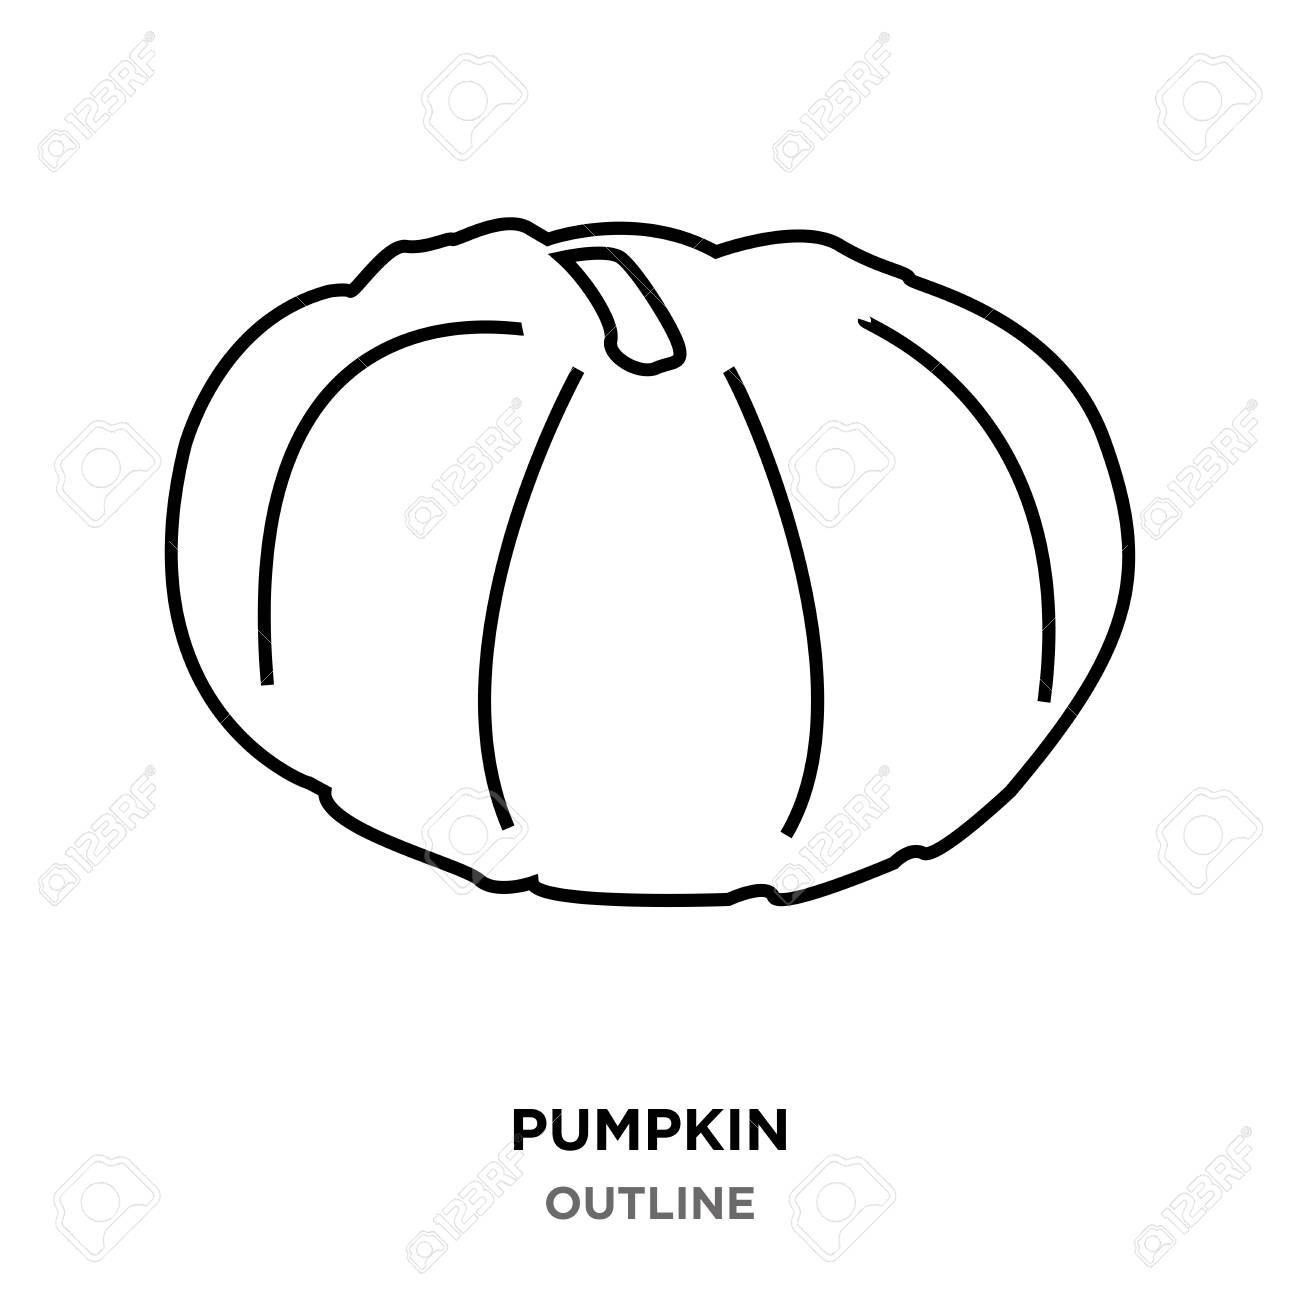 A Pumpkin Outline Images On White Background Royalty Free Cliparts